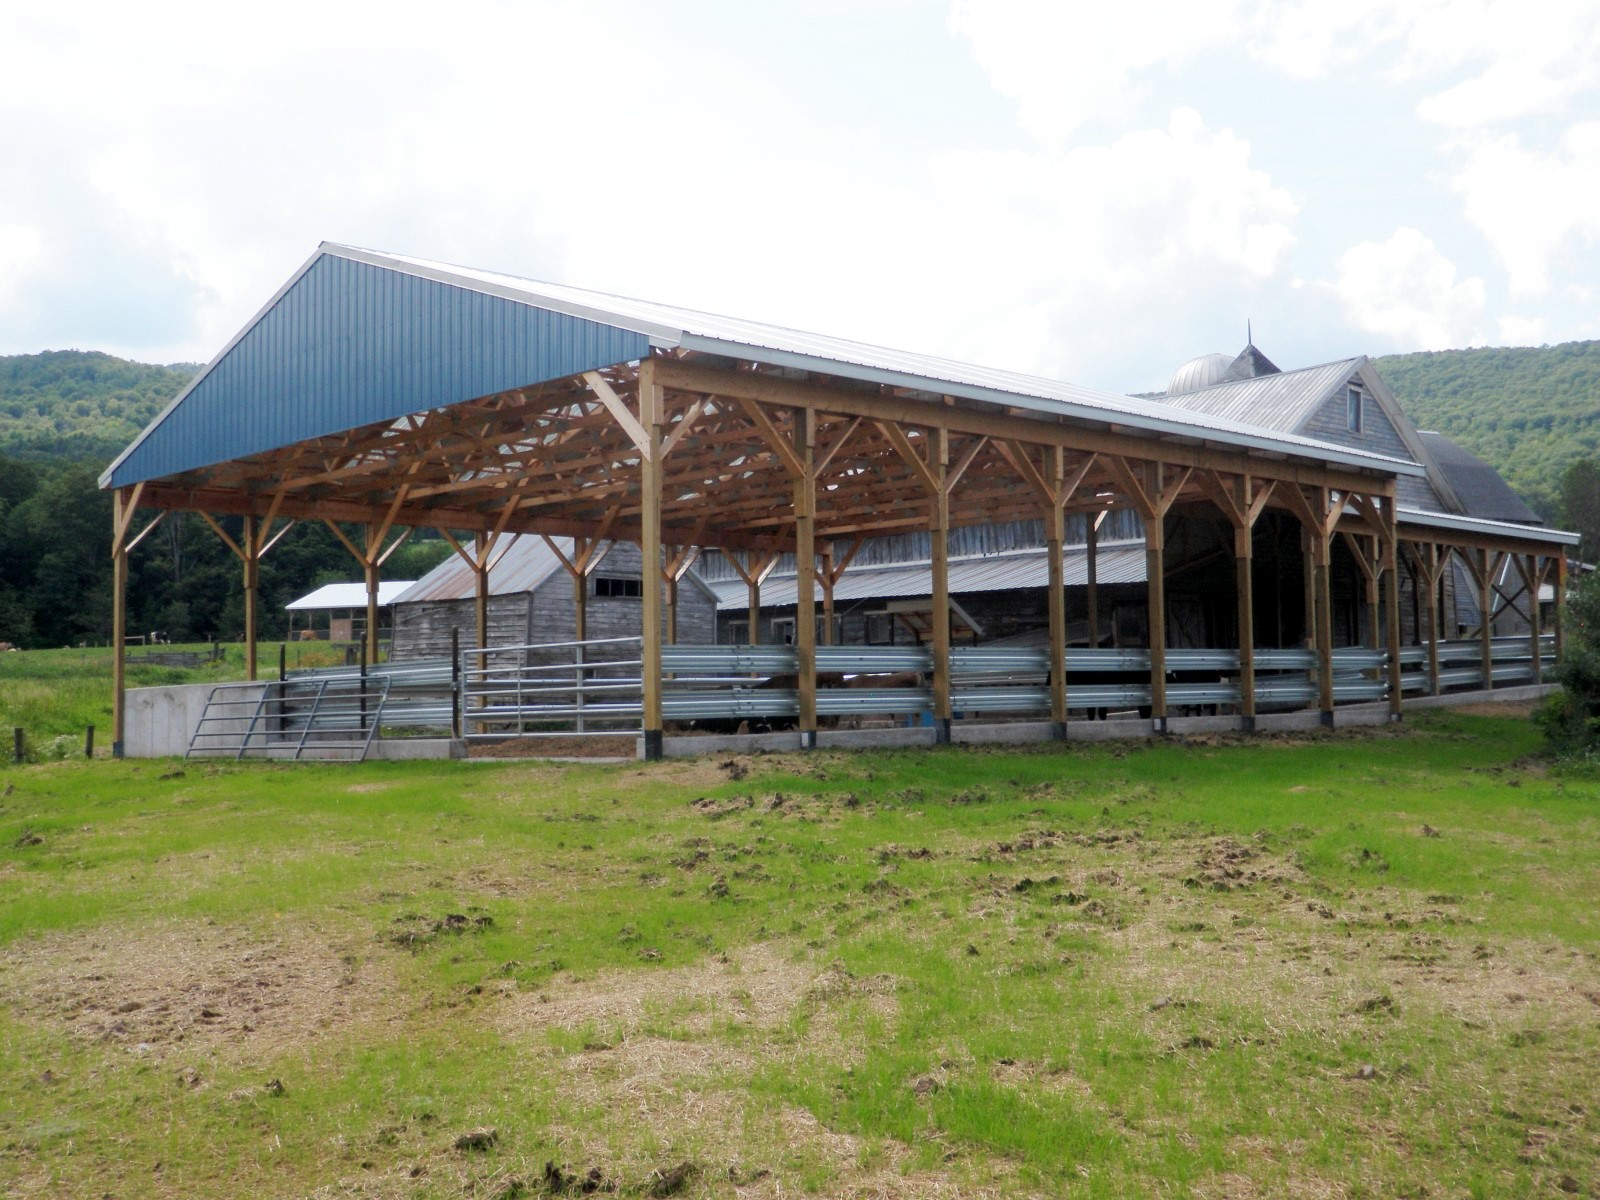 Covered barnyard after construction